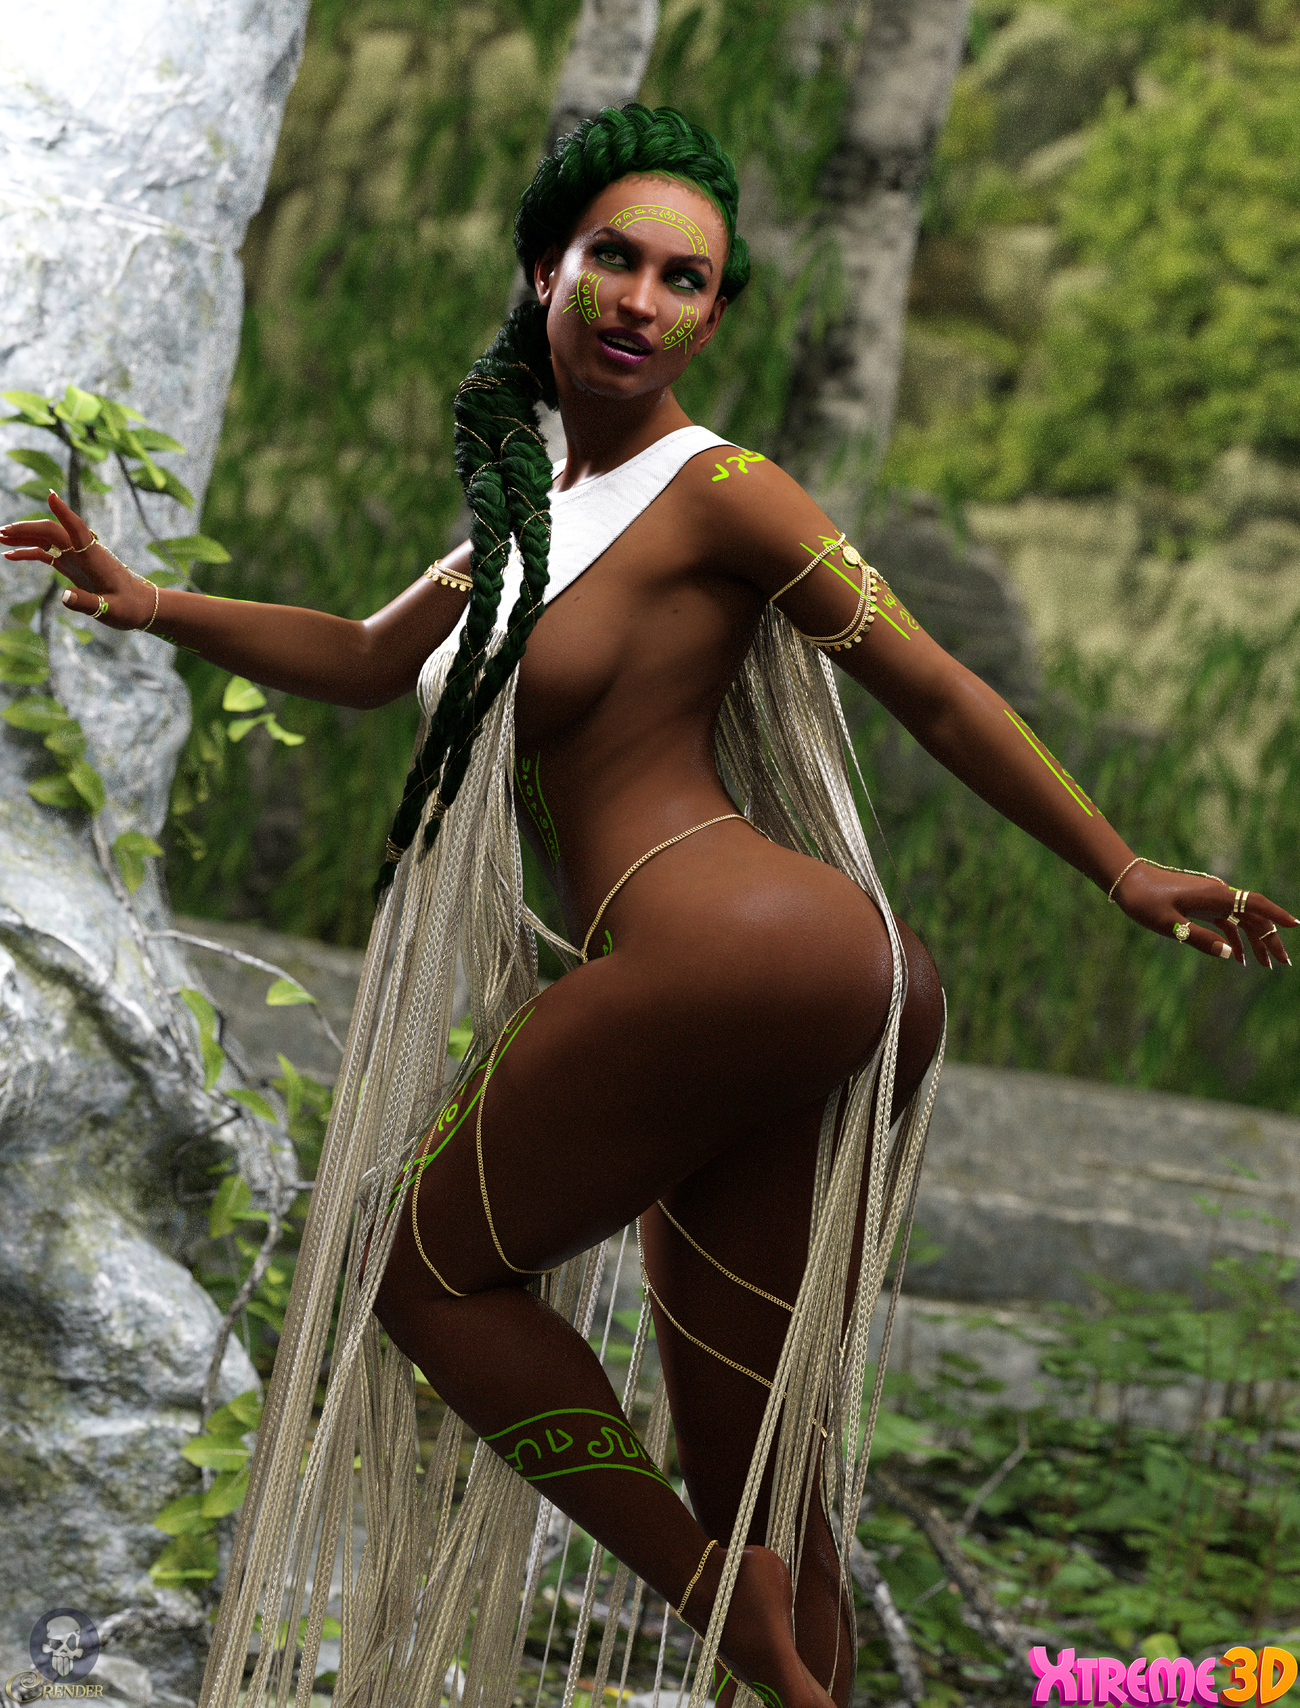 Calixta for G8.1F by TwiztedMetal and Ladyillin 2 by crender